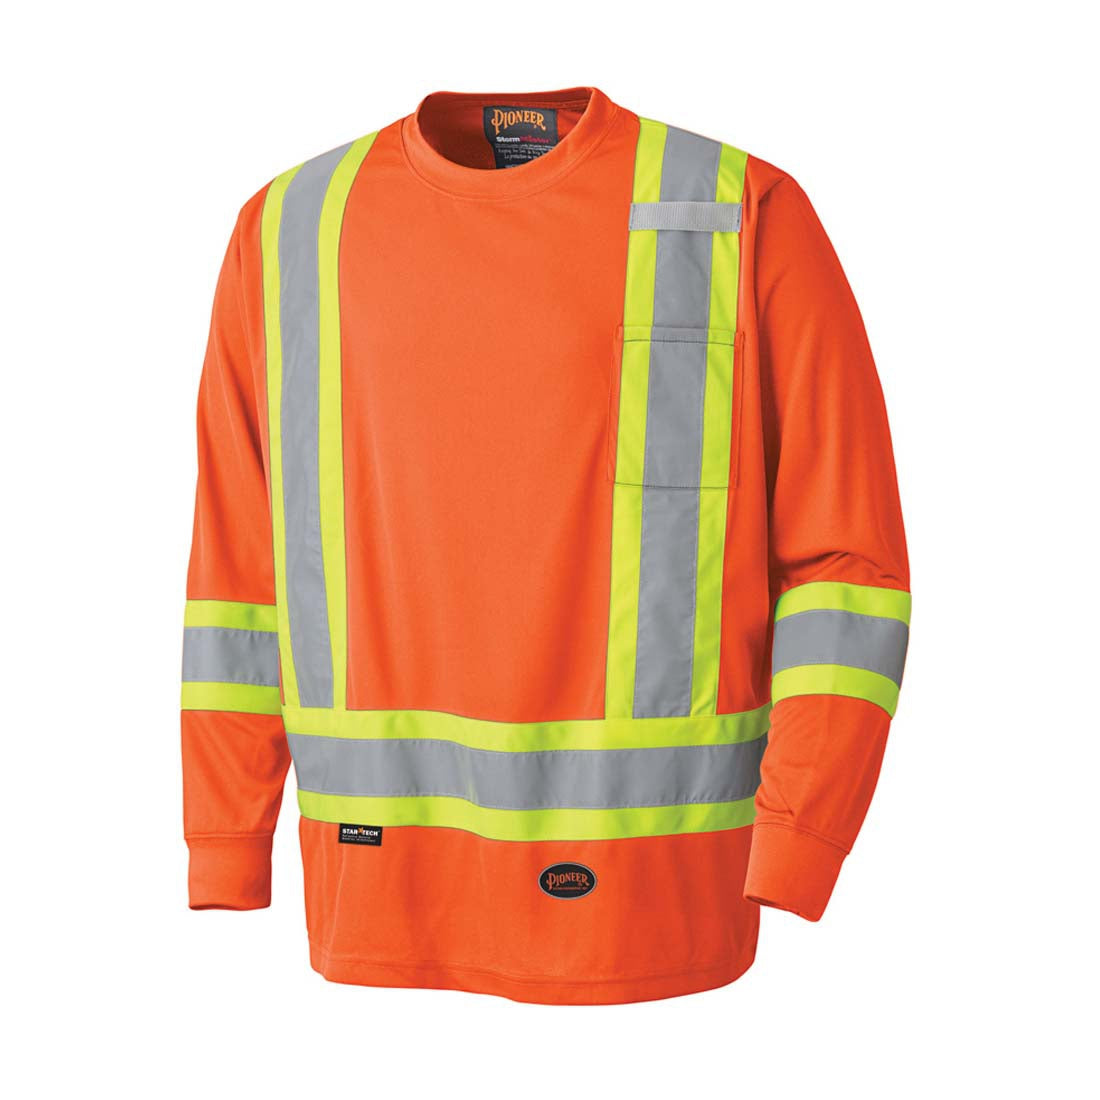 Pioneer Hi-Viz Birdseye Long-Sleeved Safety Shirt